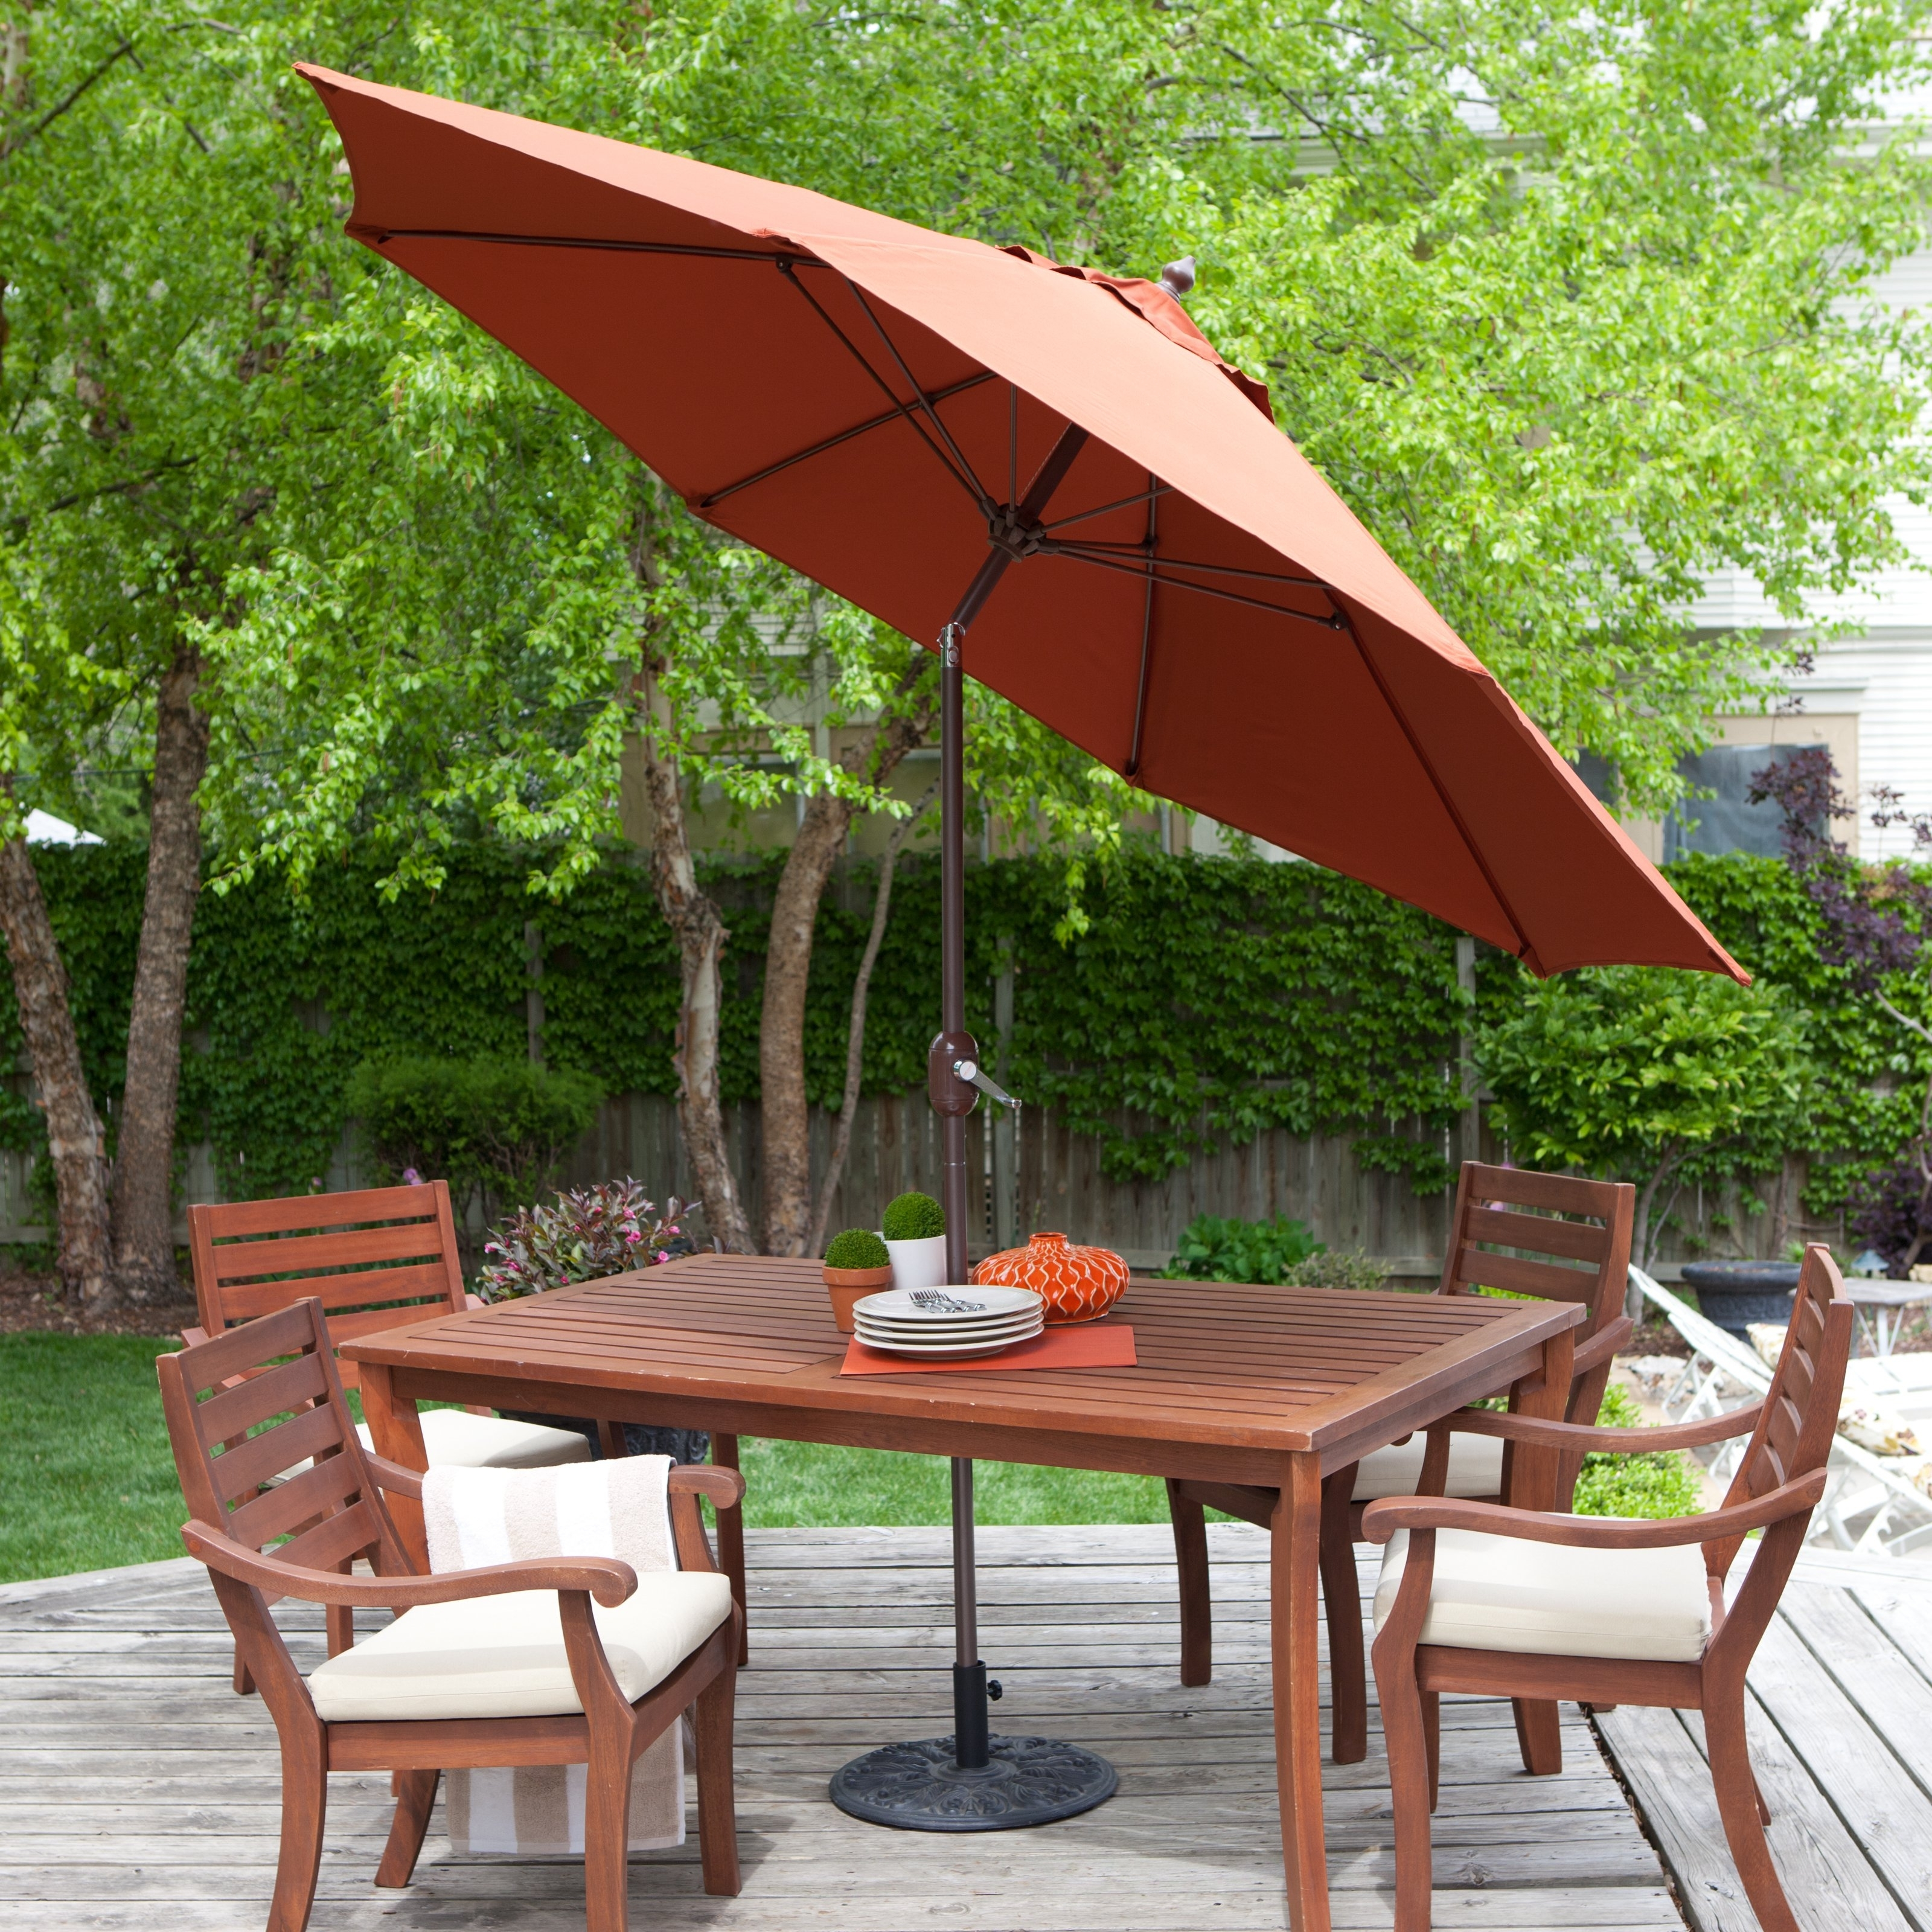 Commercial Patio Umbrellas Sunbrella Intended For Well Known Galtech Sunbrella 11 Ft (View 2 of 20)